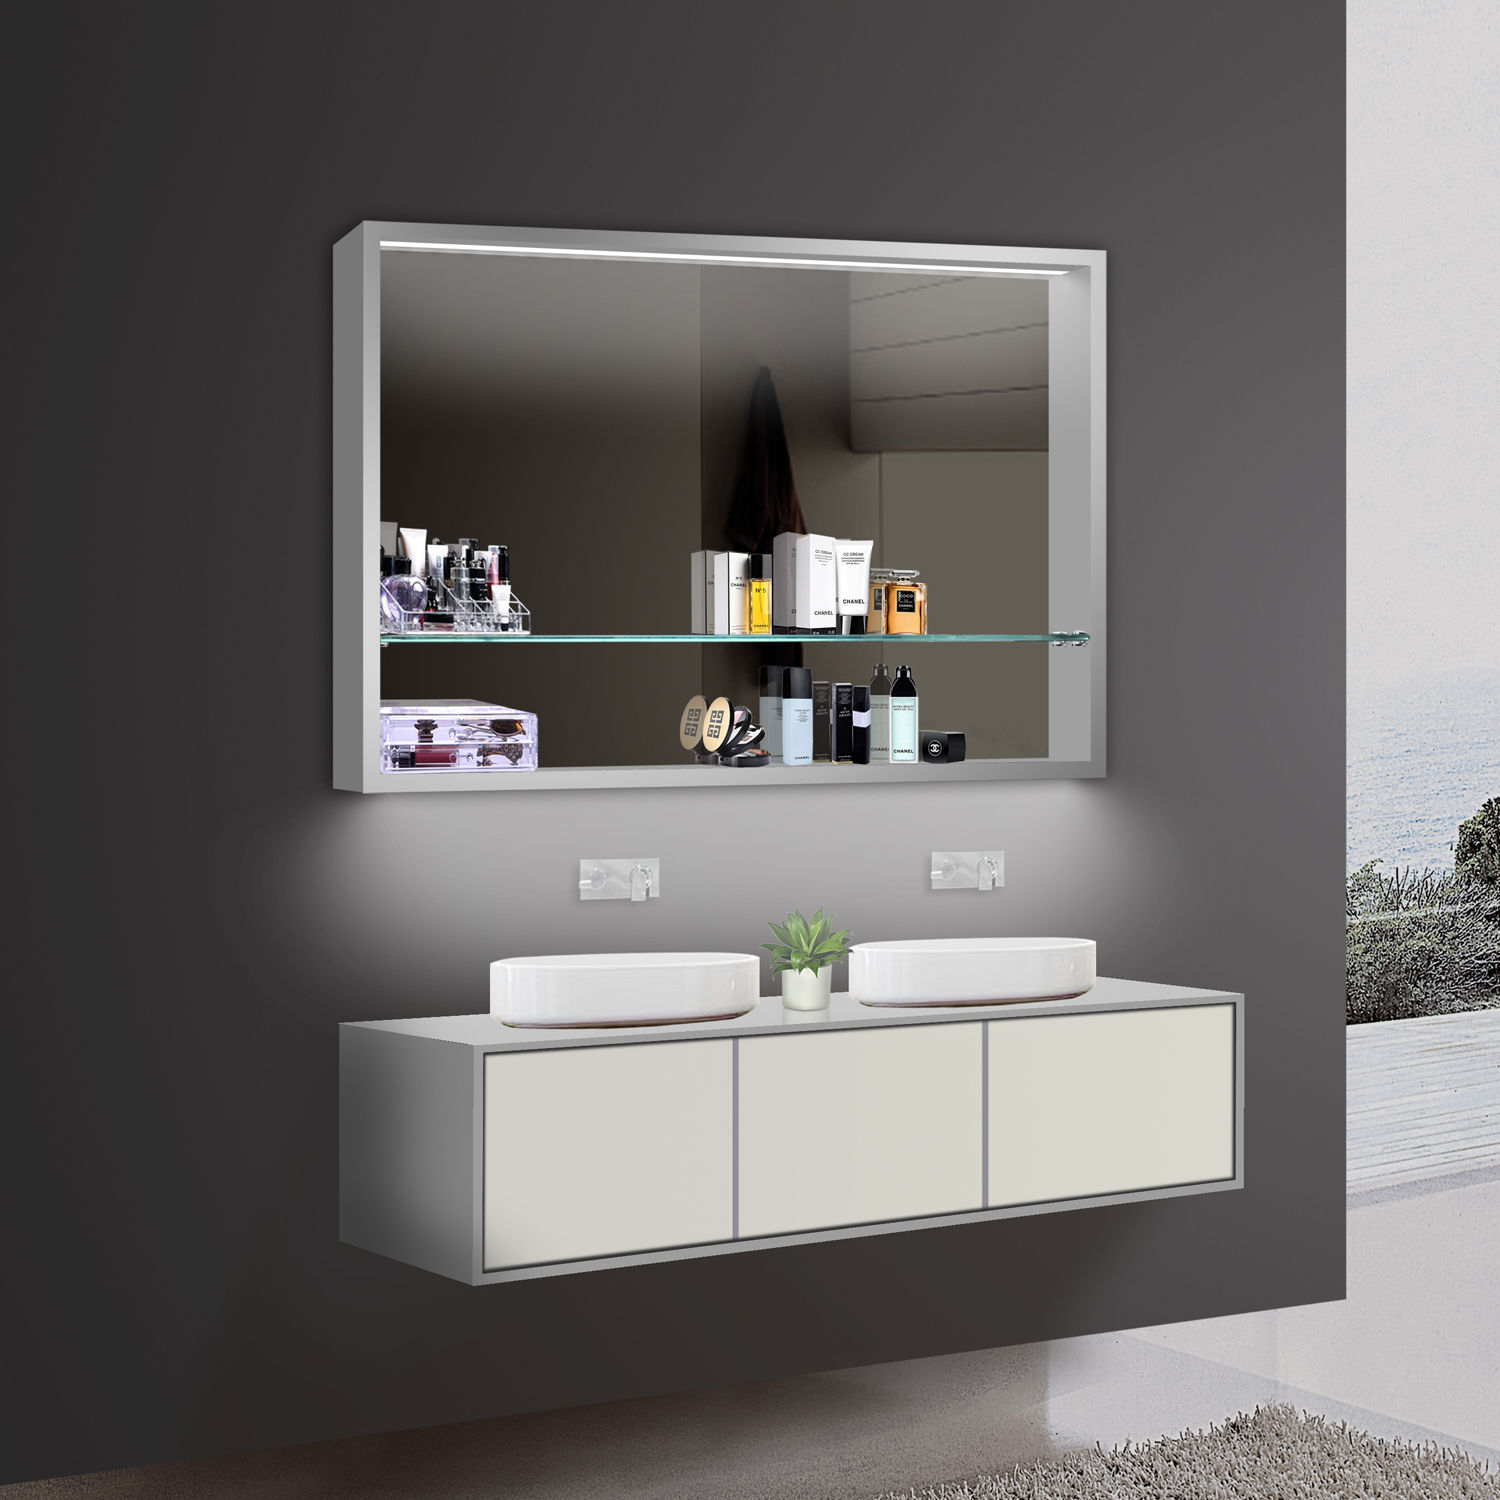 led spiegelschrank 100x75 cm kaltweiss warmweiss. Black Bedroom Furniture Sets. Home Design Ideas